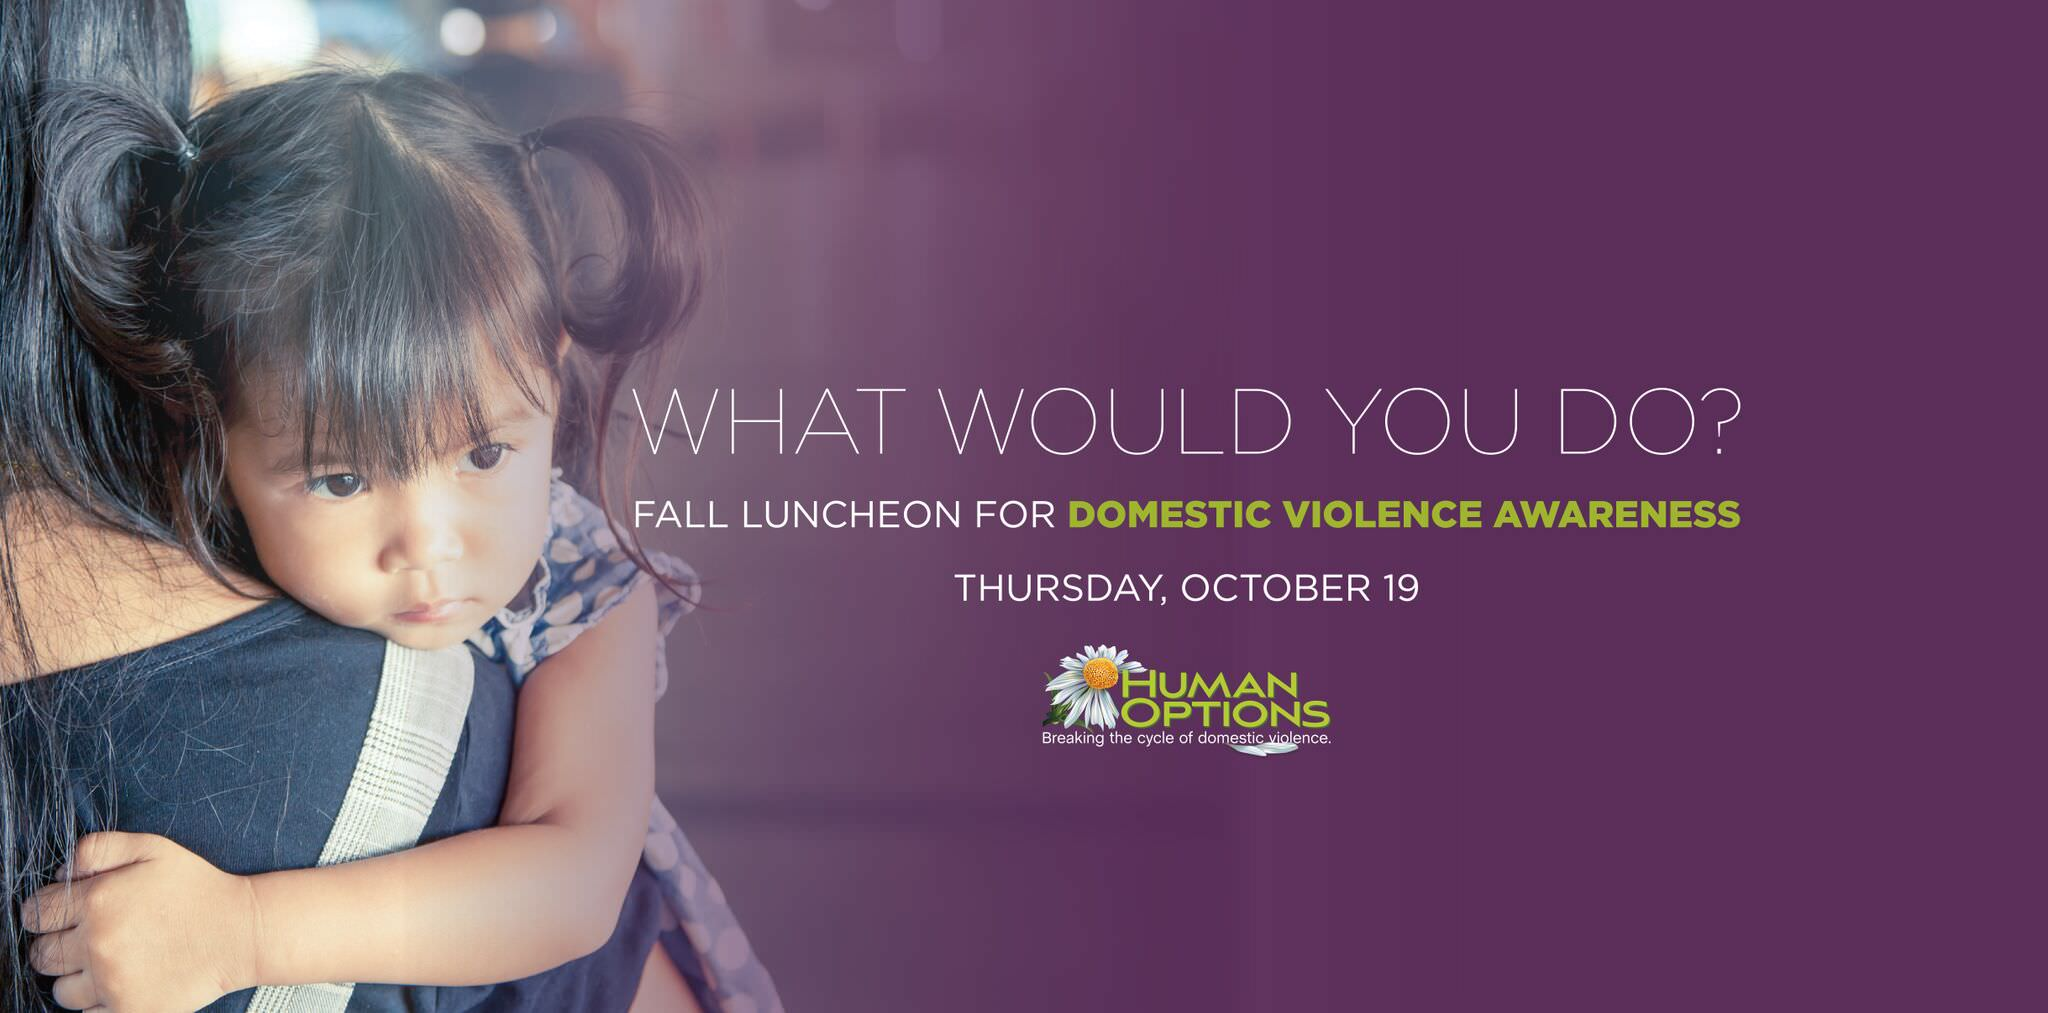 Fall Luncheon for Domestic Violence Awareness